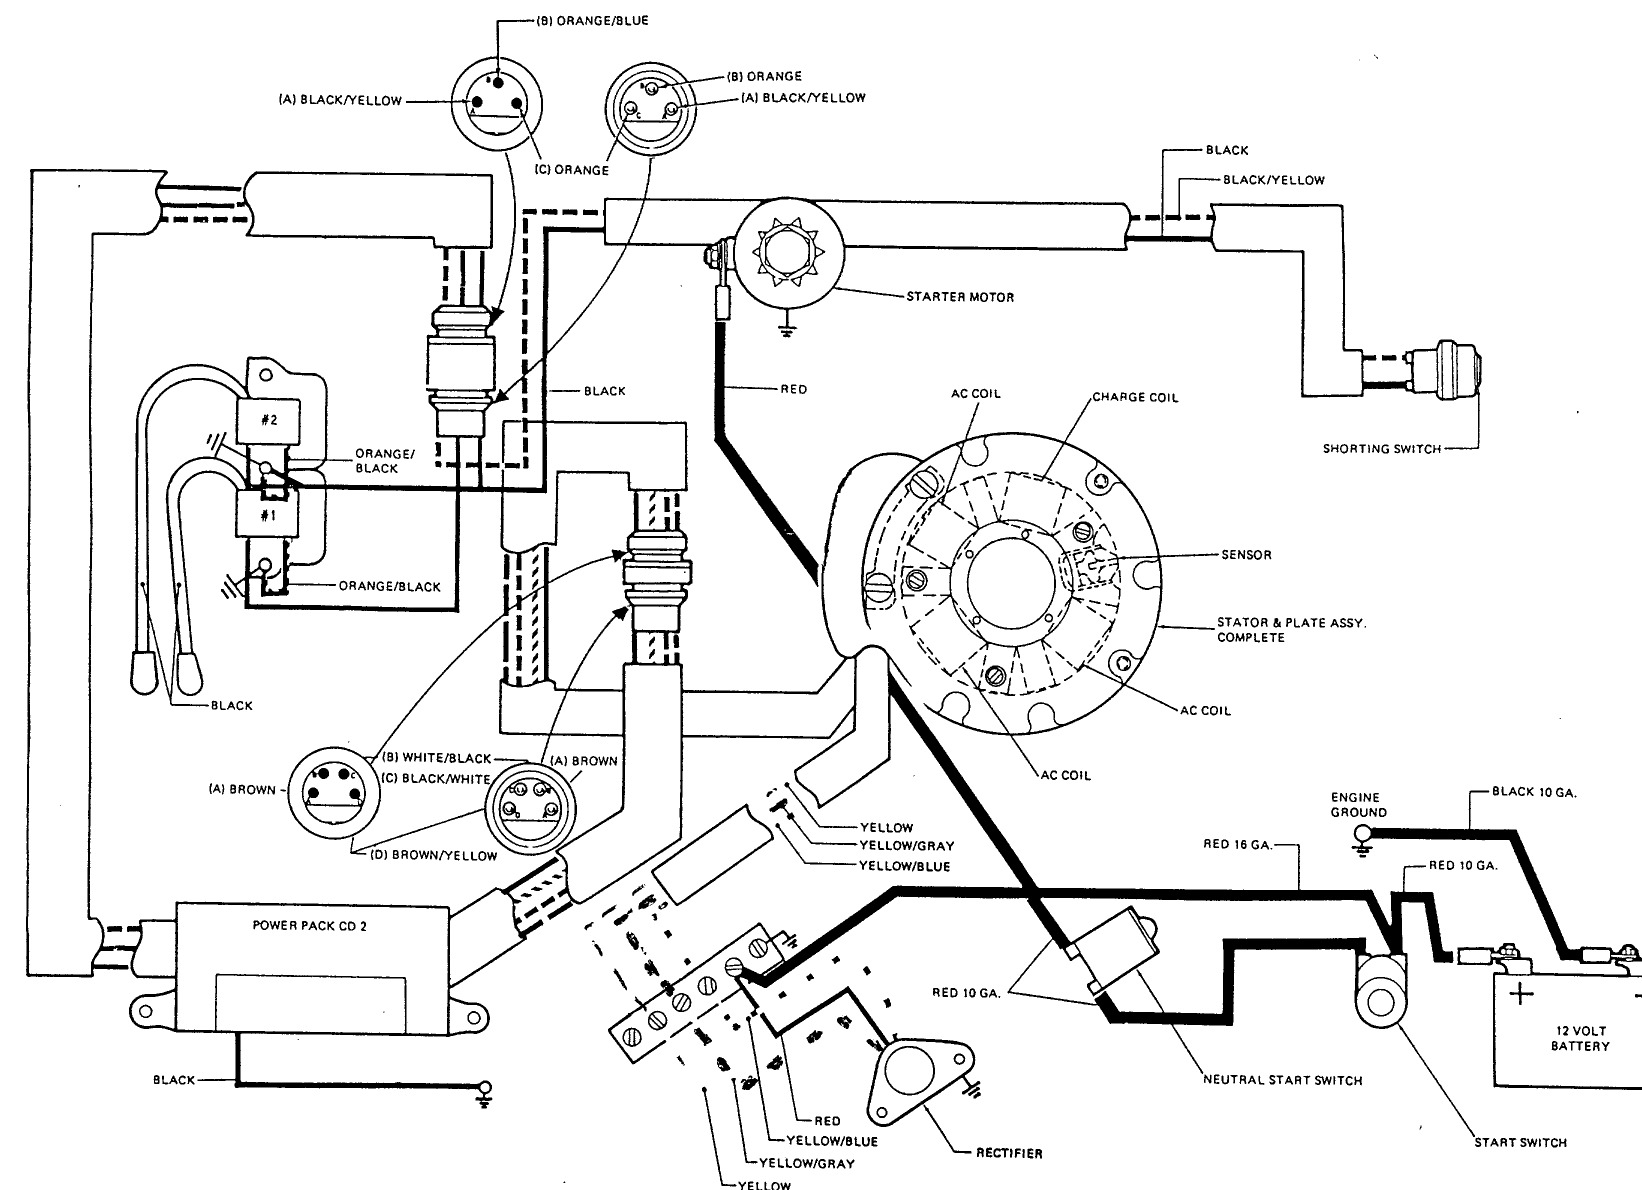 mercury 35 hp wiring diagram with Johnson Troubleshooting on Vapor Separator likewise Yamaha Outboard Sdometer Wiring moreover Wiring A Vacuum Pump in addition Johnson Ignition Switch Wiring Diagram further 40 Hp Johnson Outboard Ignition Switch Wiring Diagram.